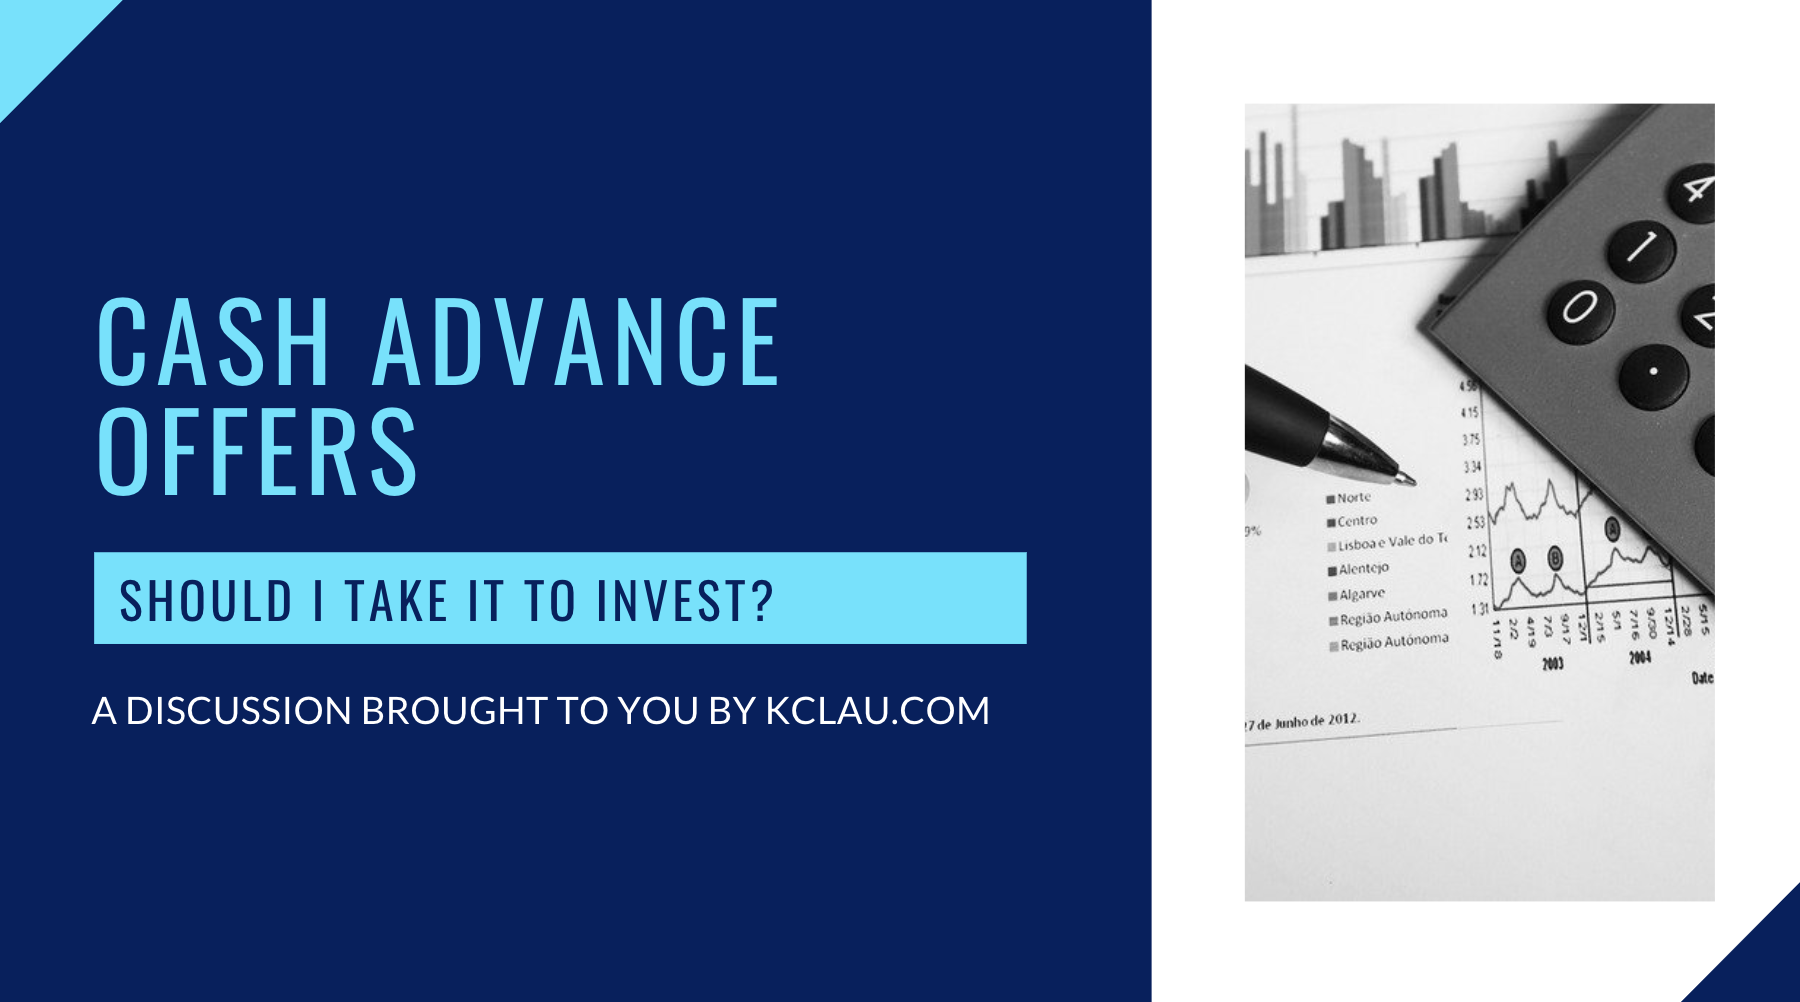 Should I take Cash Advance for Investments?